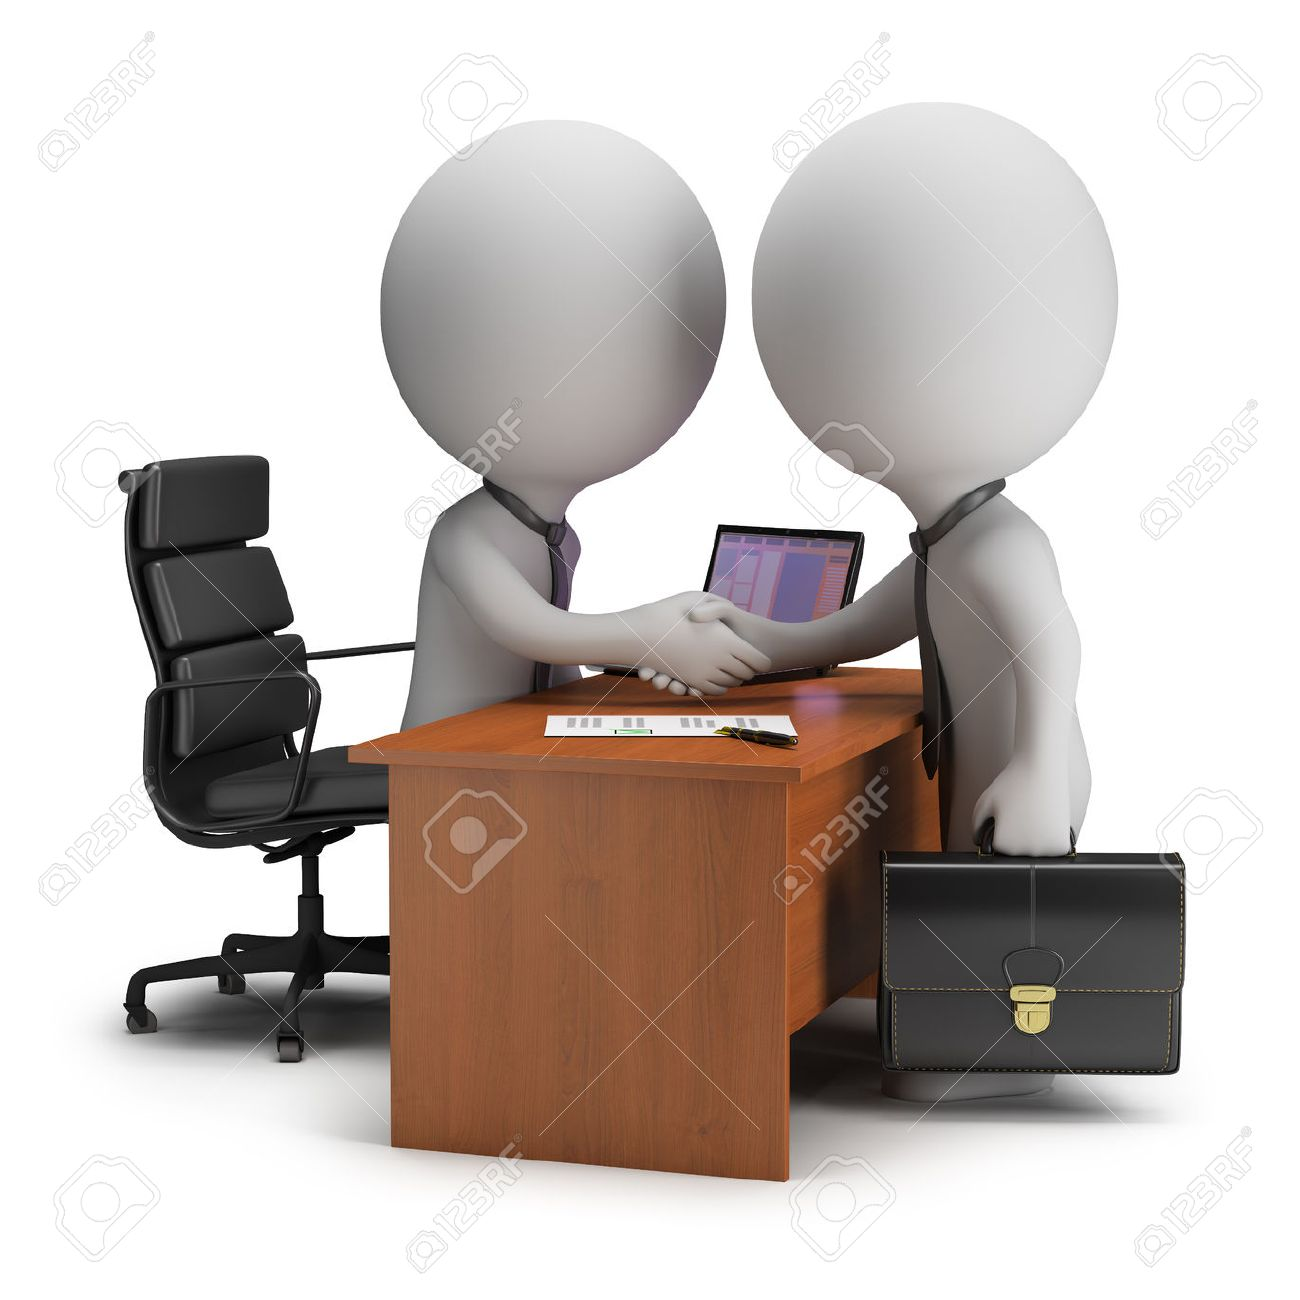 Two 3d small people have signed the agreement near the desk  3d image  White background Stock Photo - 23327695